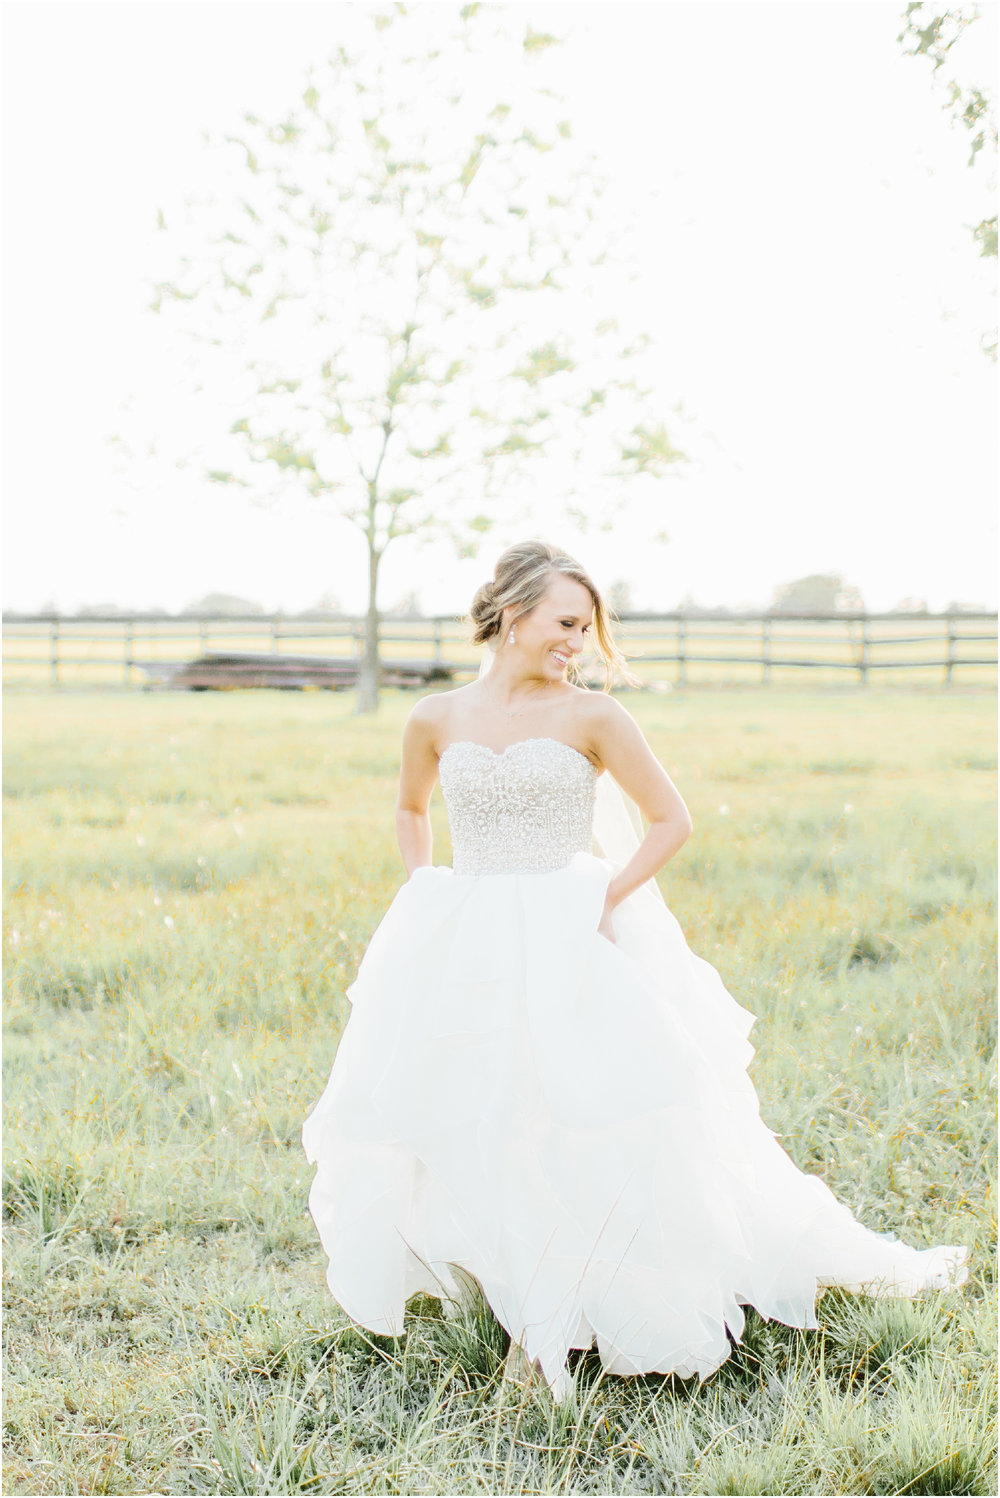 Natural_bridals_Grassy_field-11.jpg